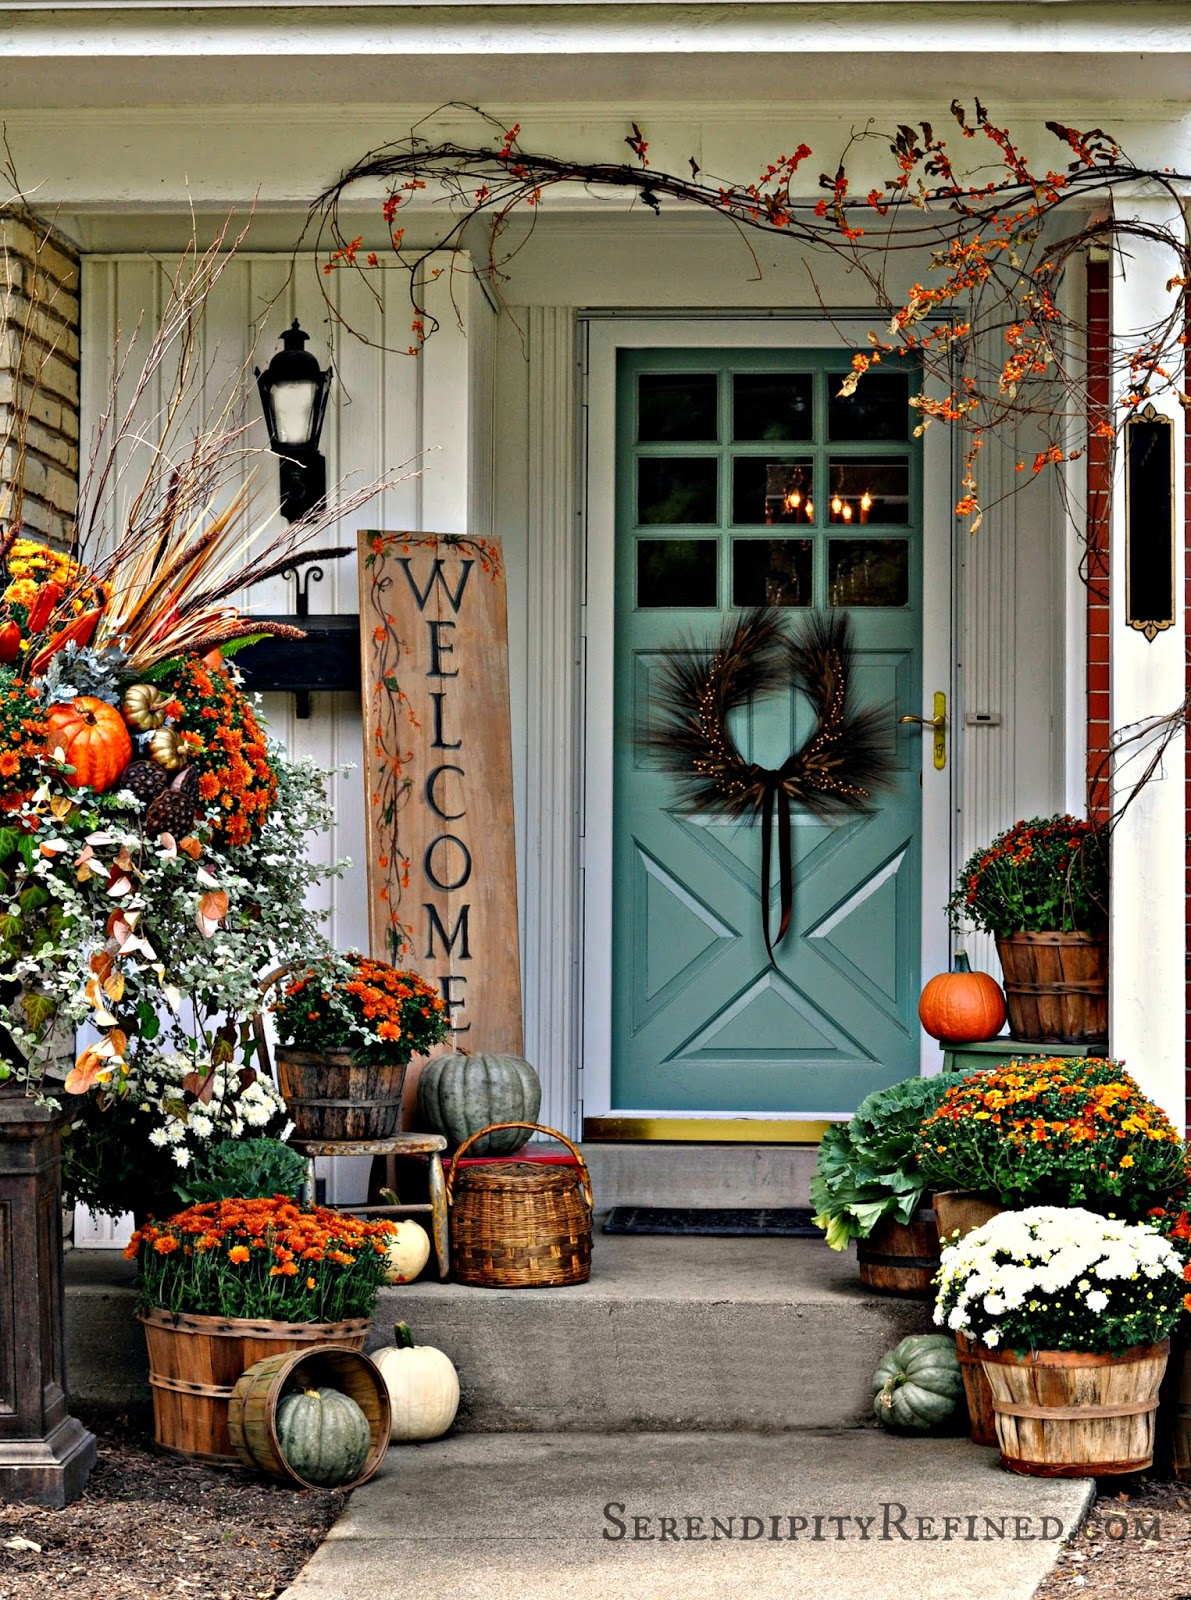 85 pretty autumn porch dcor ideas - Porch Decor